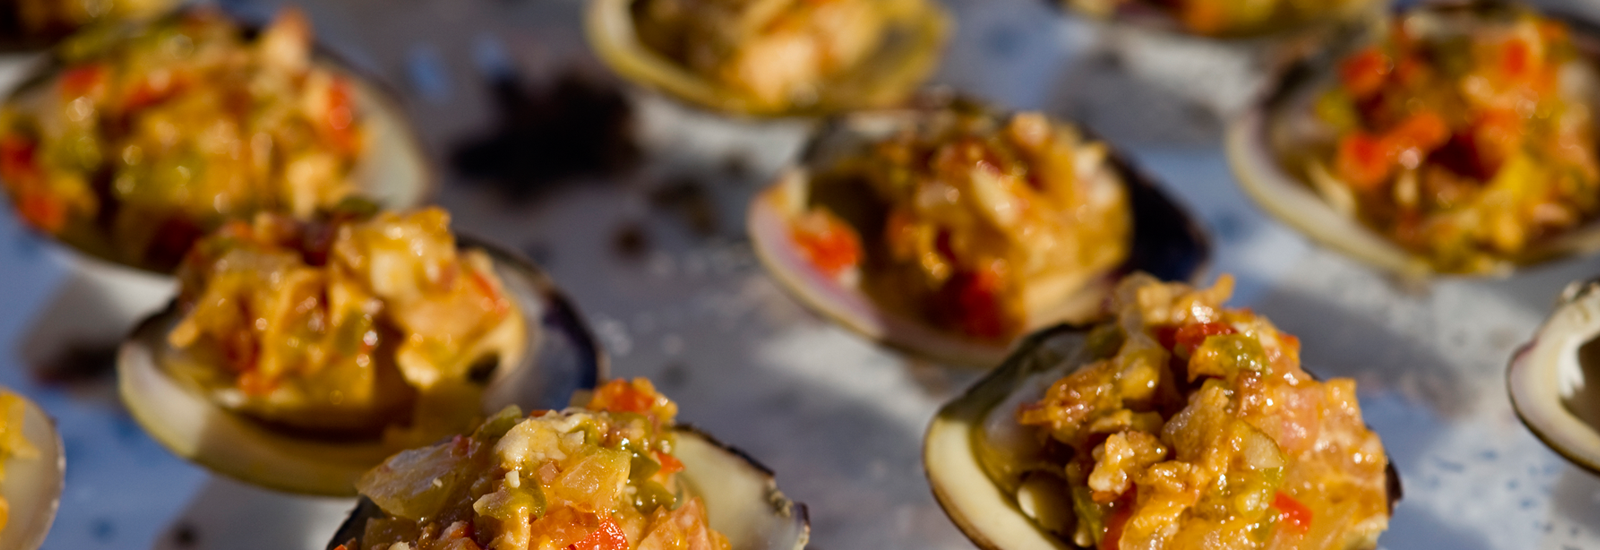 hp-slider-1600×550-clams-nt